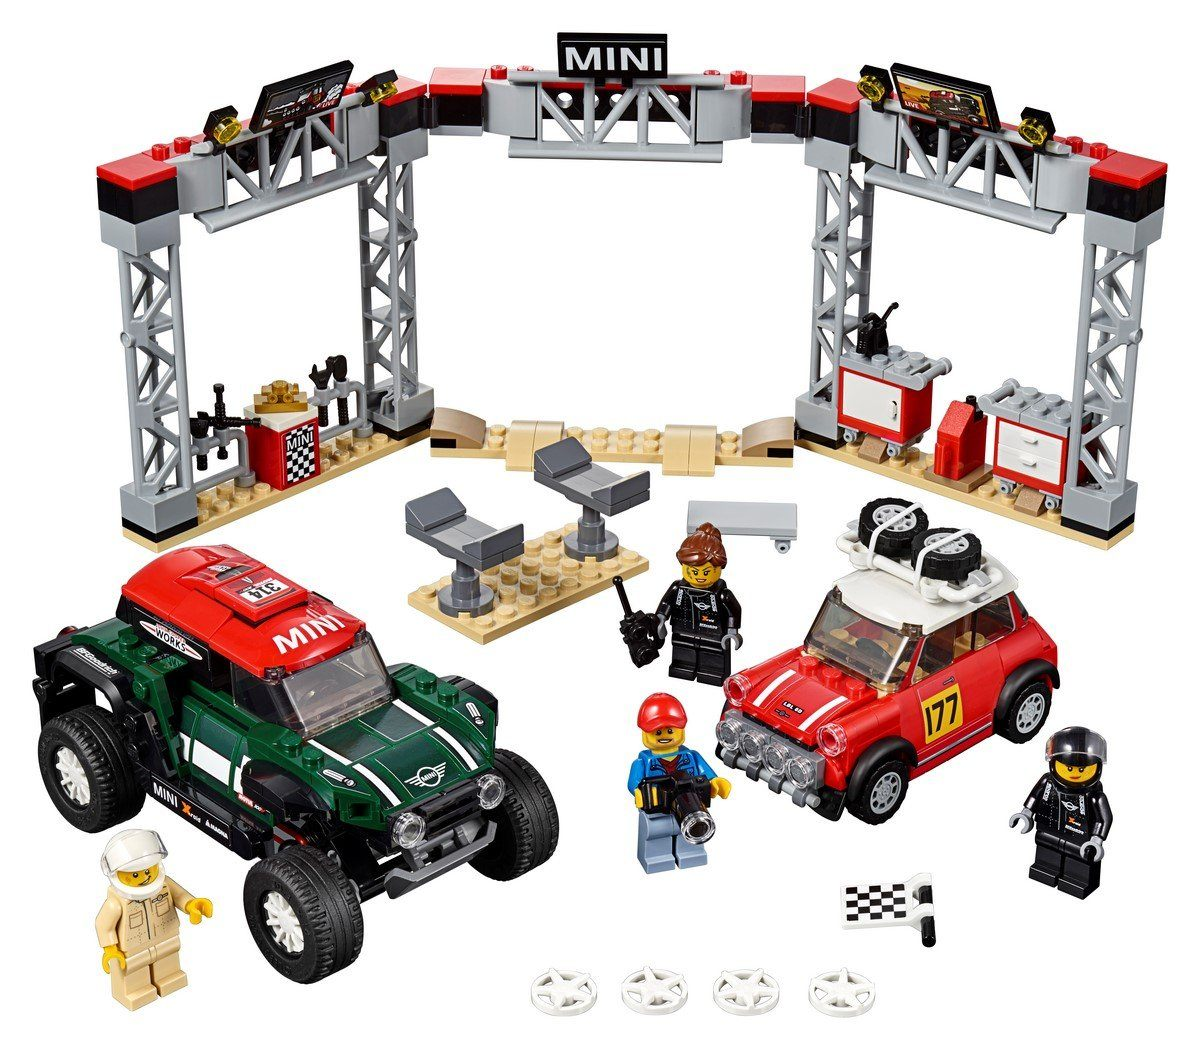 75894 1967 Mini Cooper S Rally and 2018 MINI John Cooper Works Buggy - LEGO® Bricks World